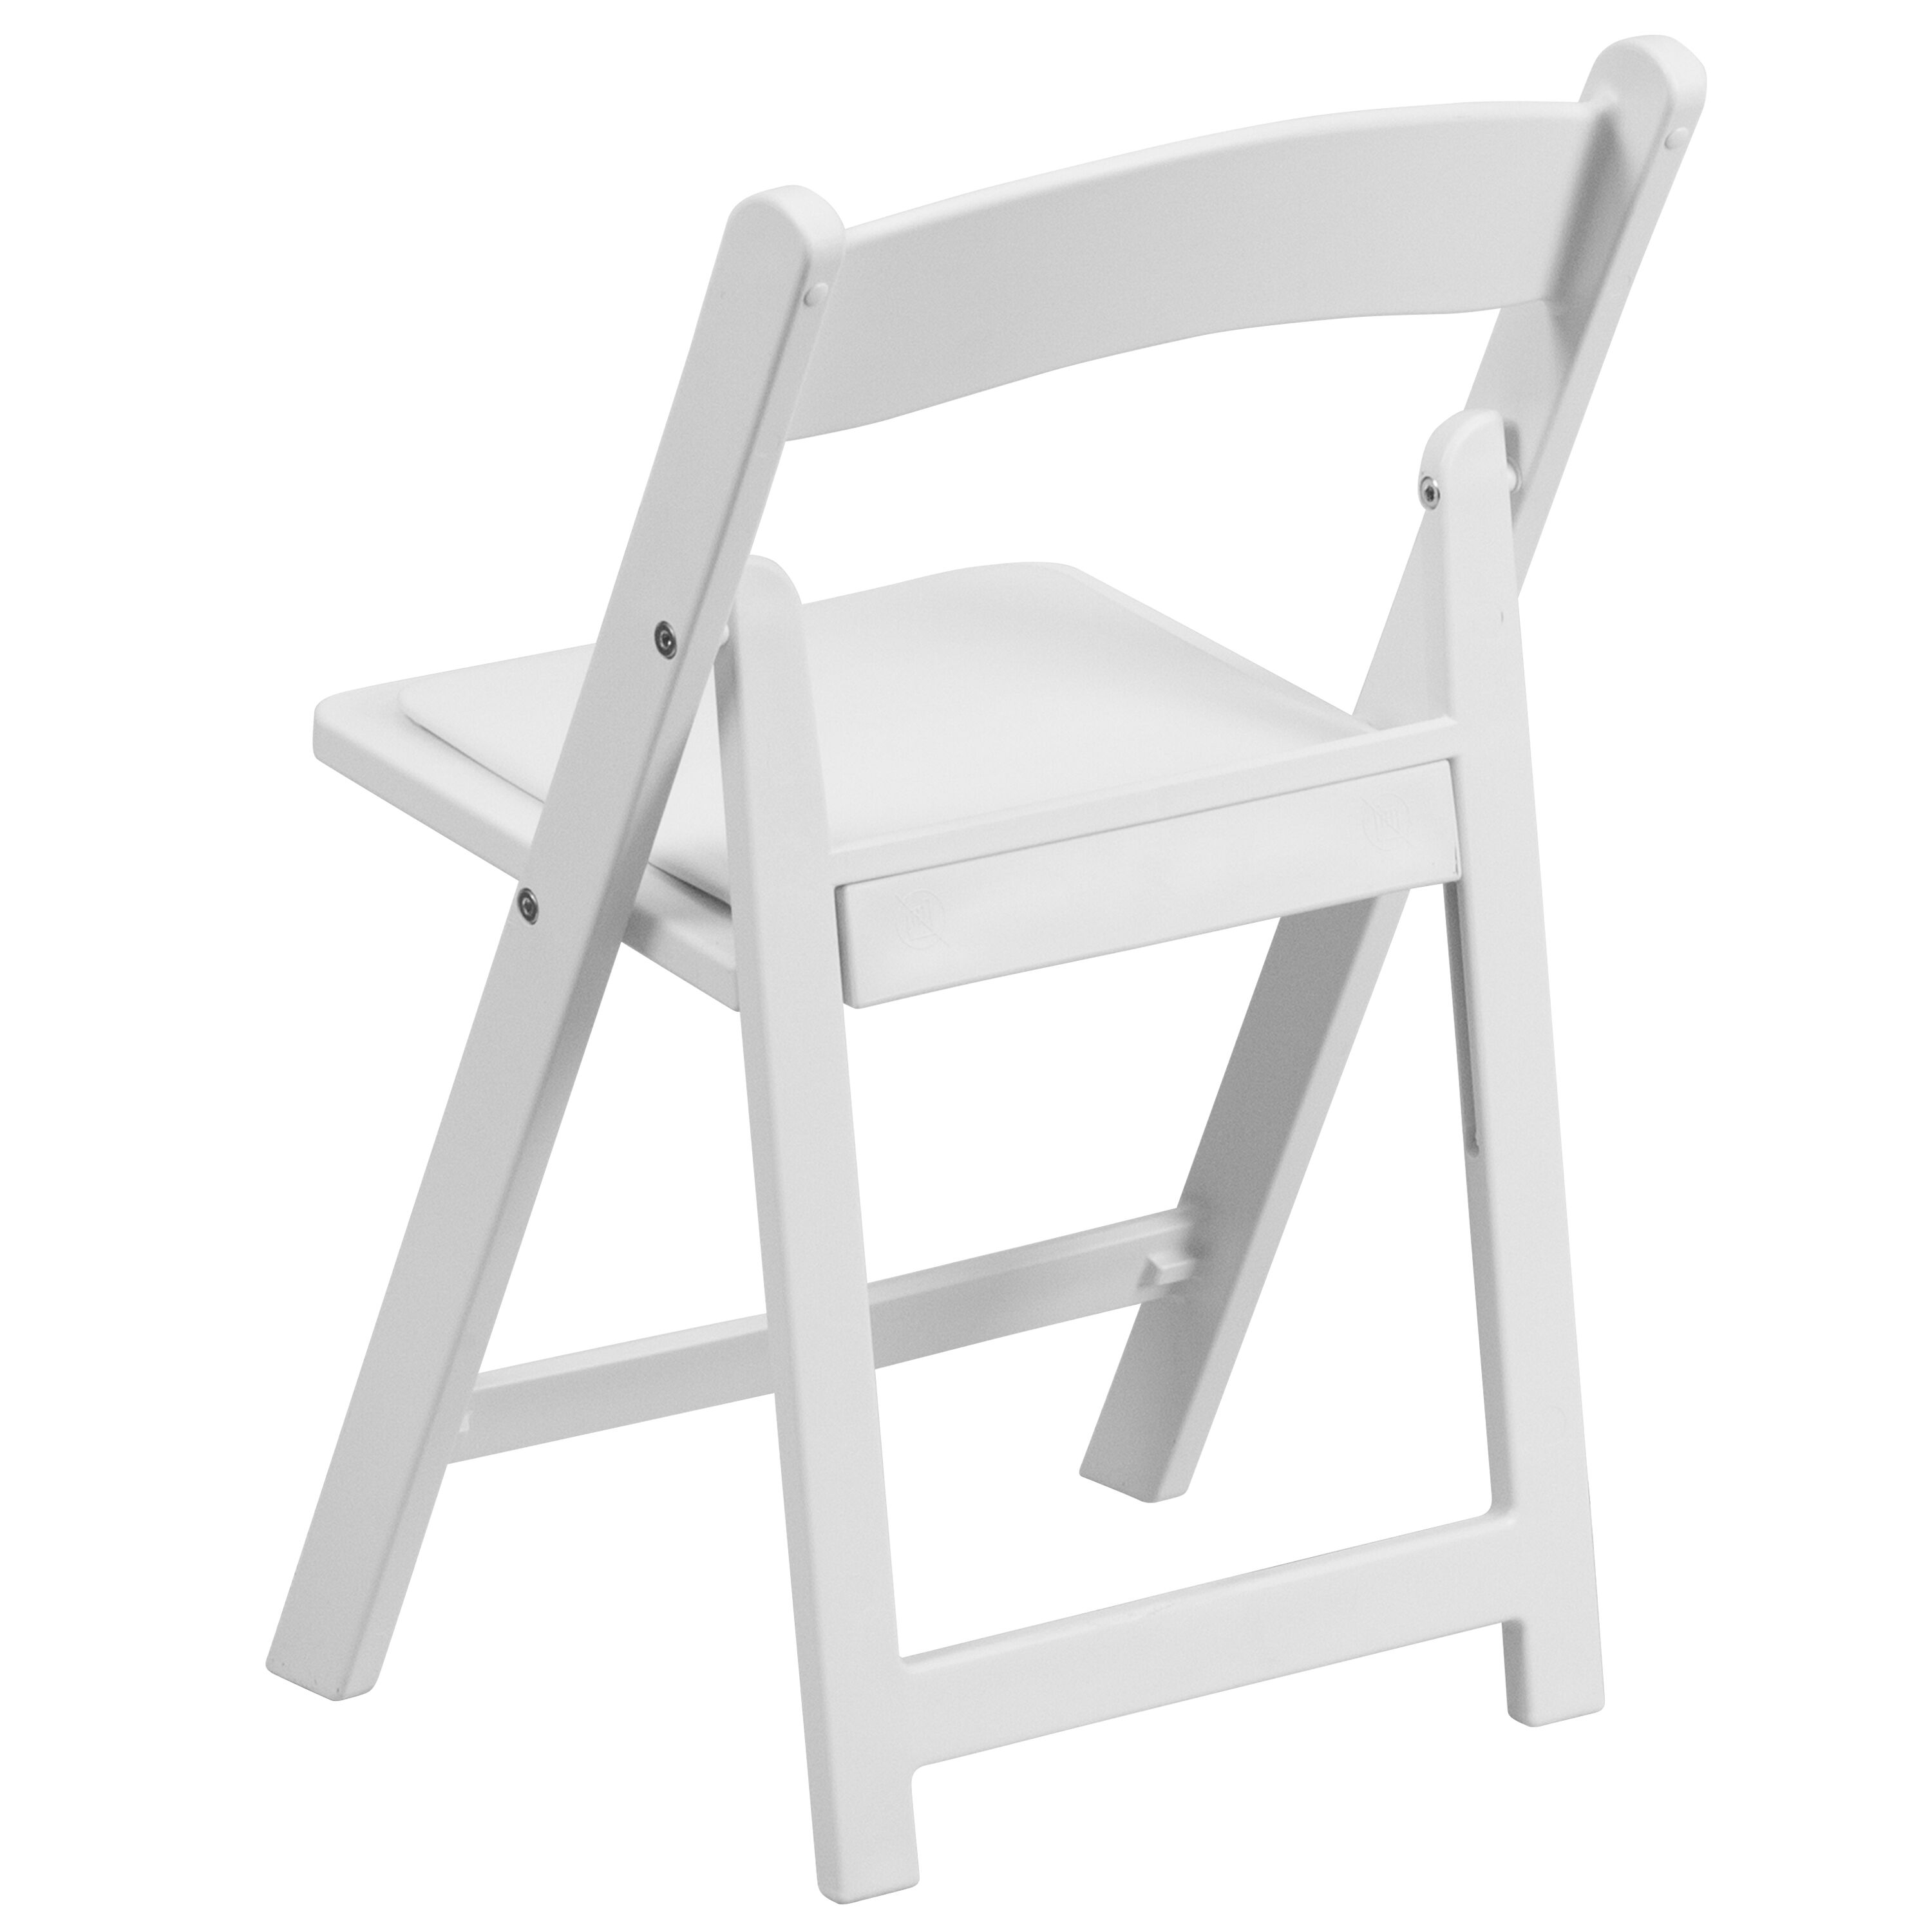 resin folding chairs for sale rocking toddlers canada kids white chair le l 1k gg foldingchairs4less com our with vinyl padded seat is on now